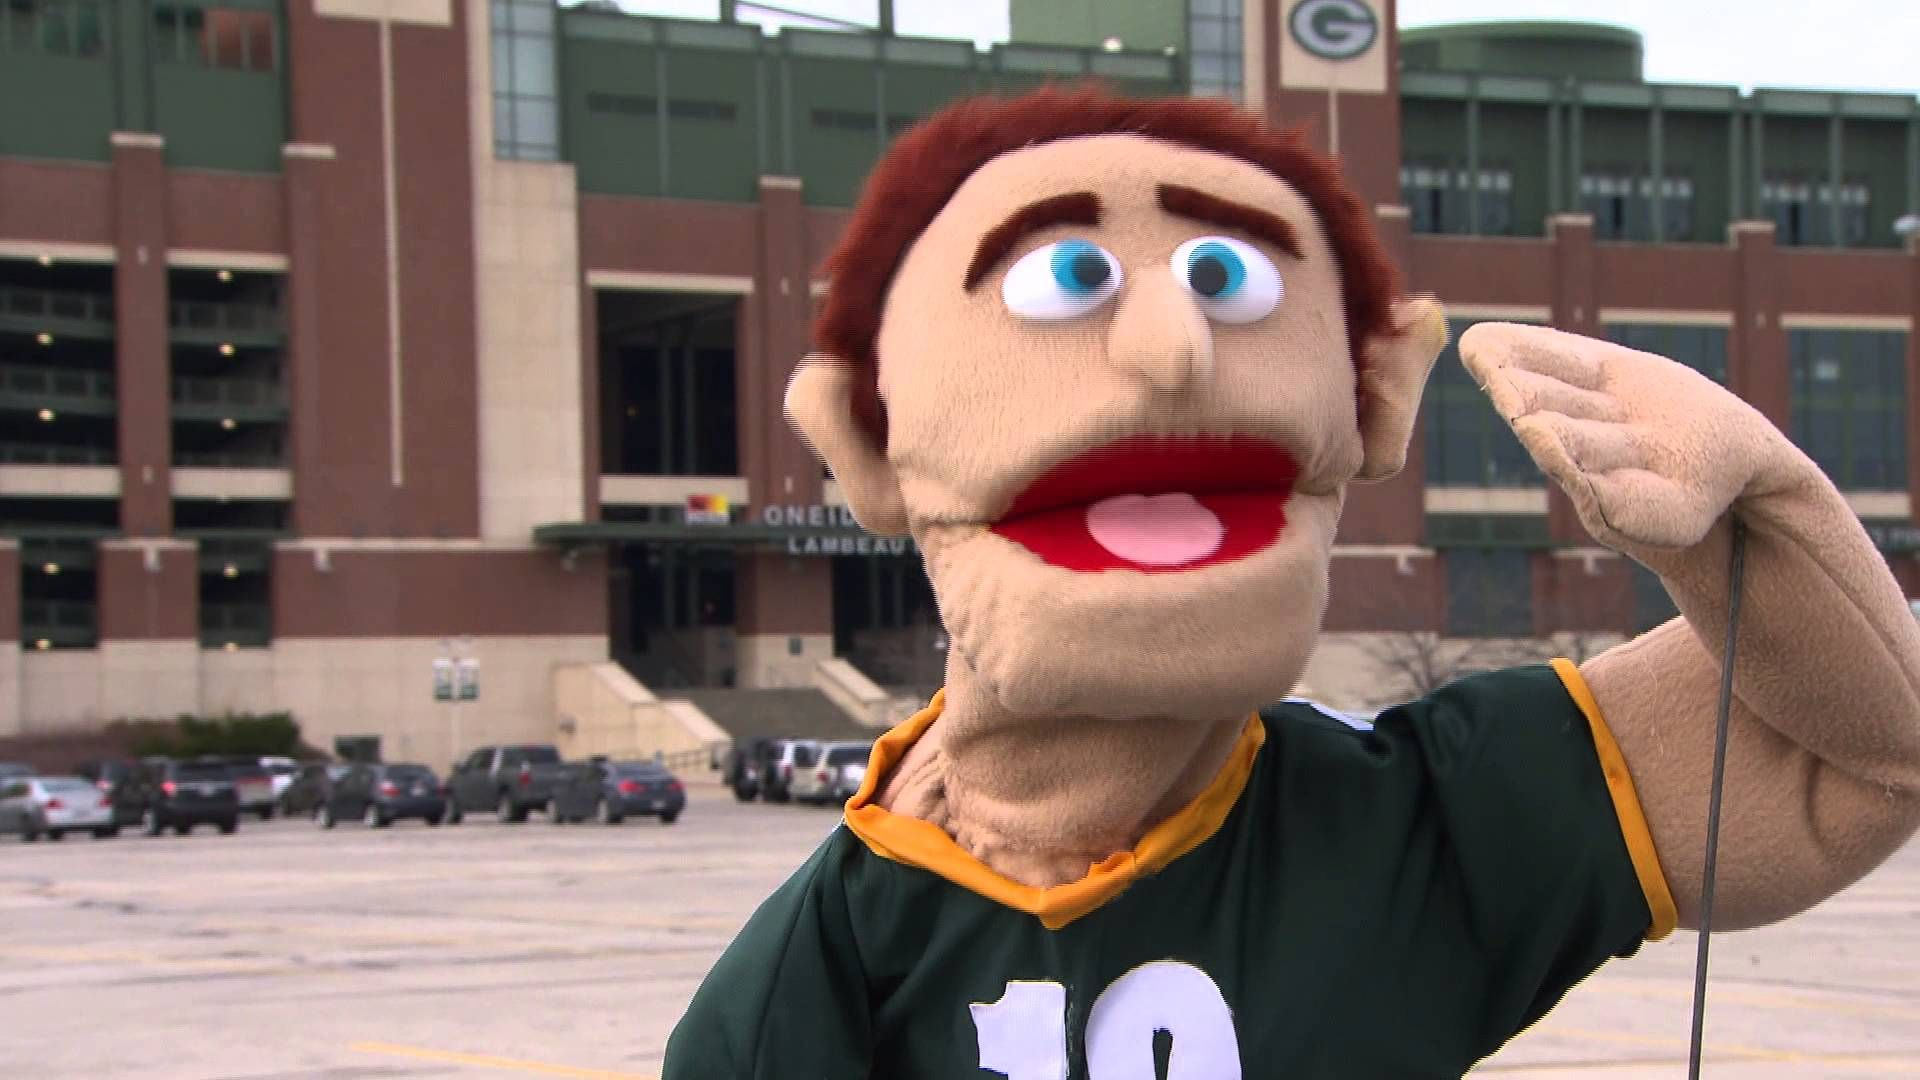 Aaron Rogders Muppet Commercial Aaron Laughs As He S Talking Green Bay Packers Fans Green Bay Packers Muppets